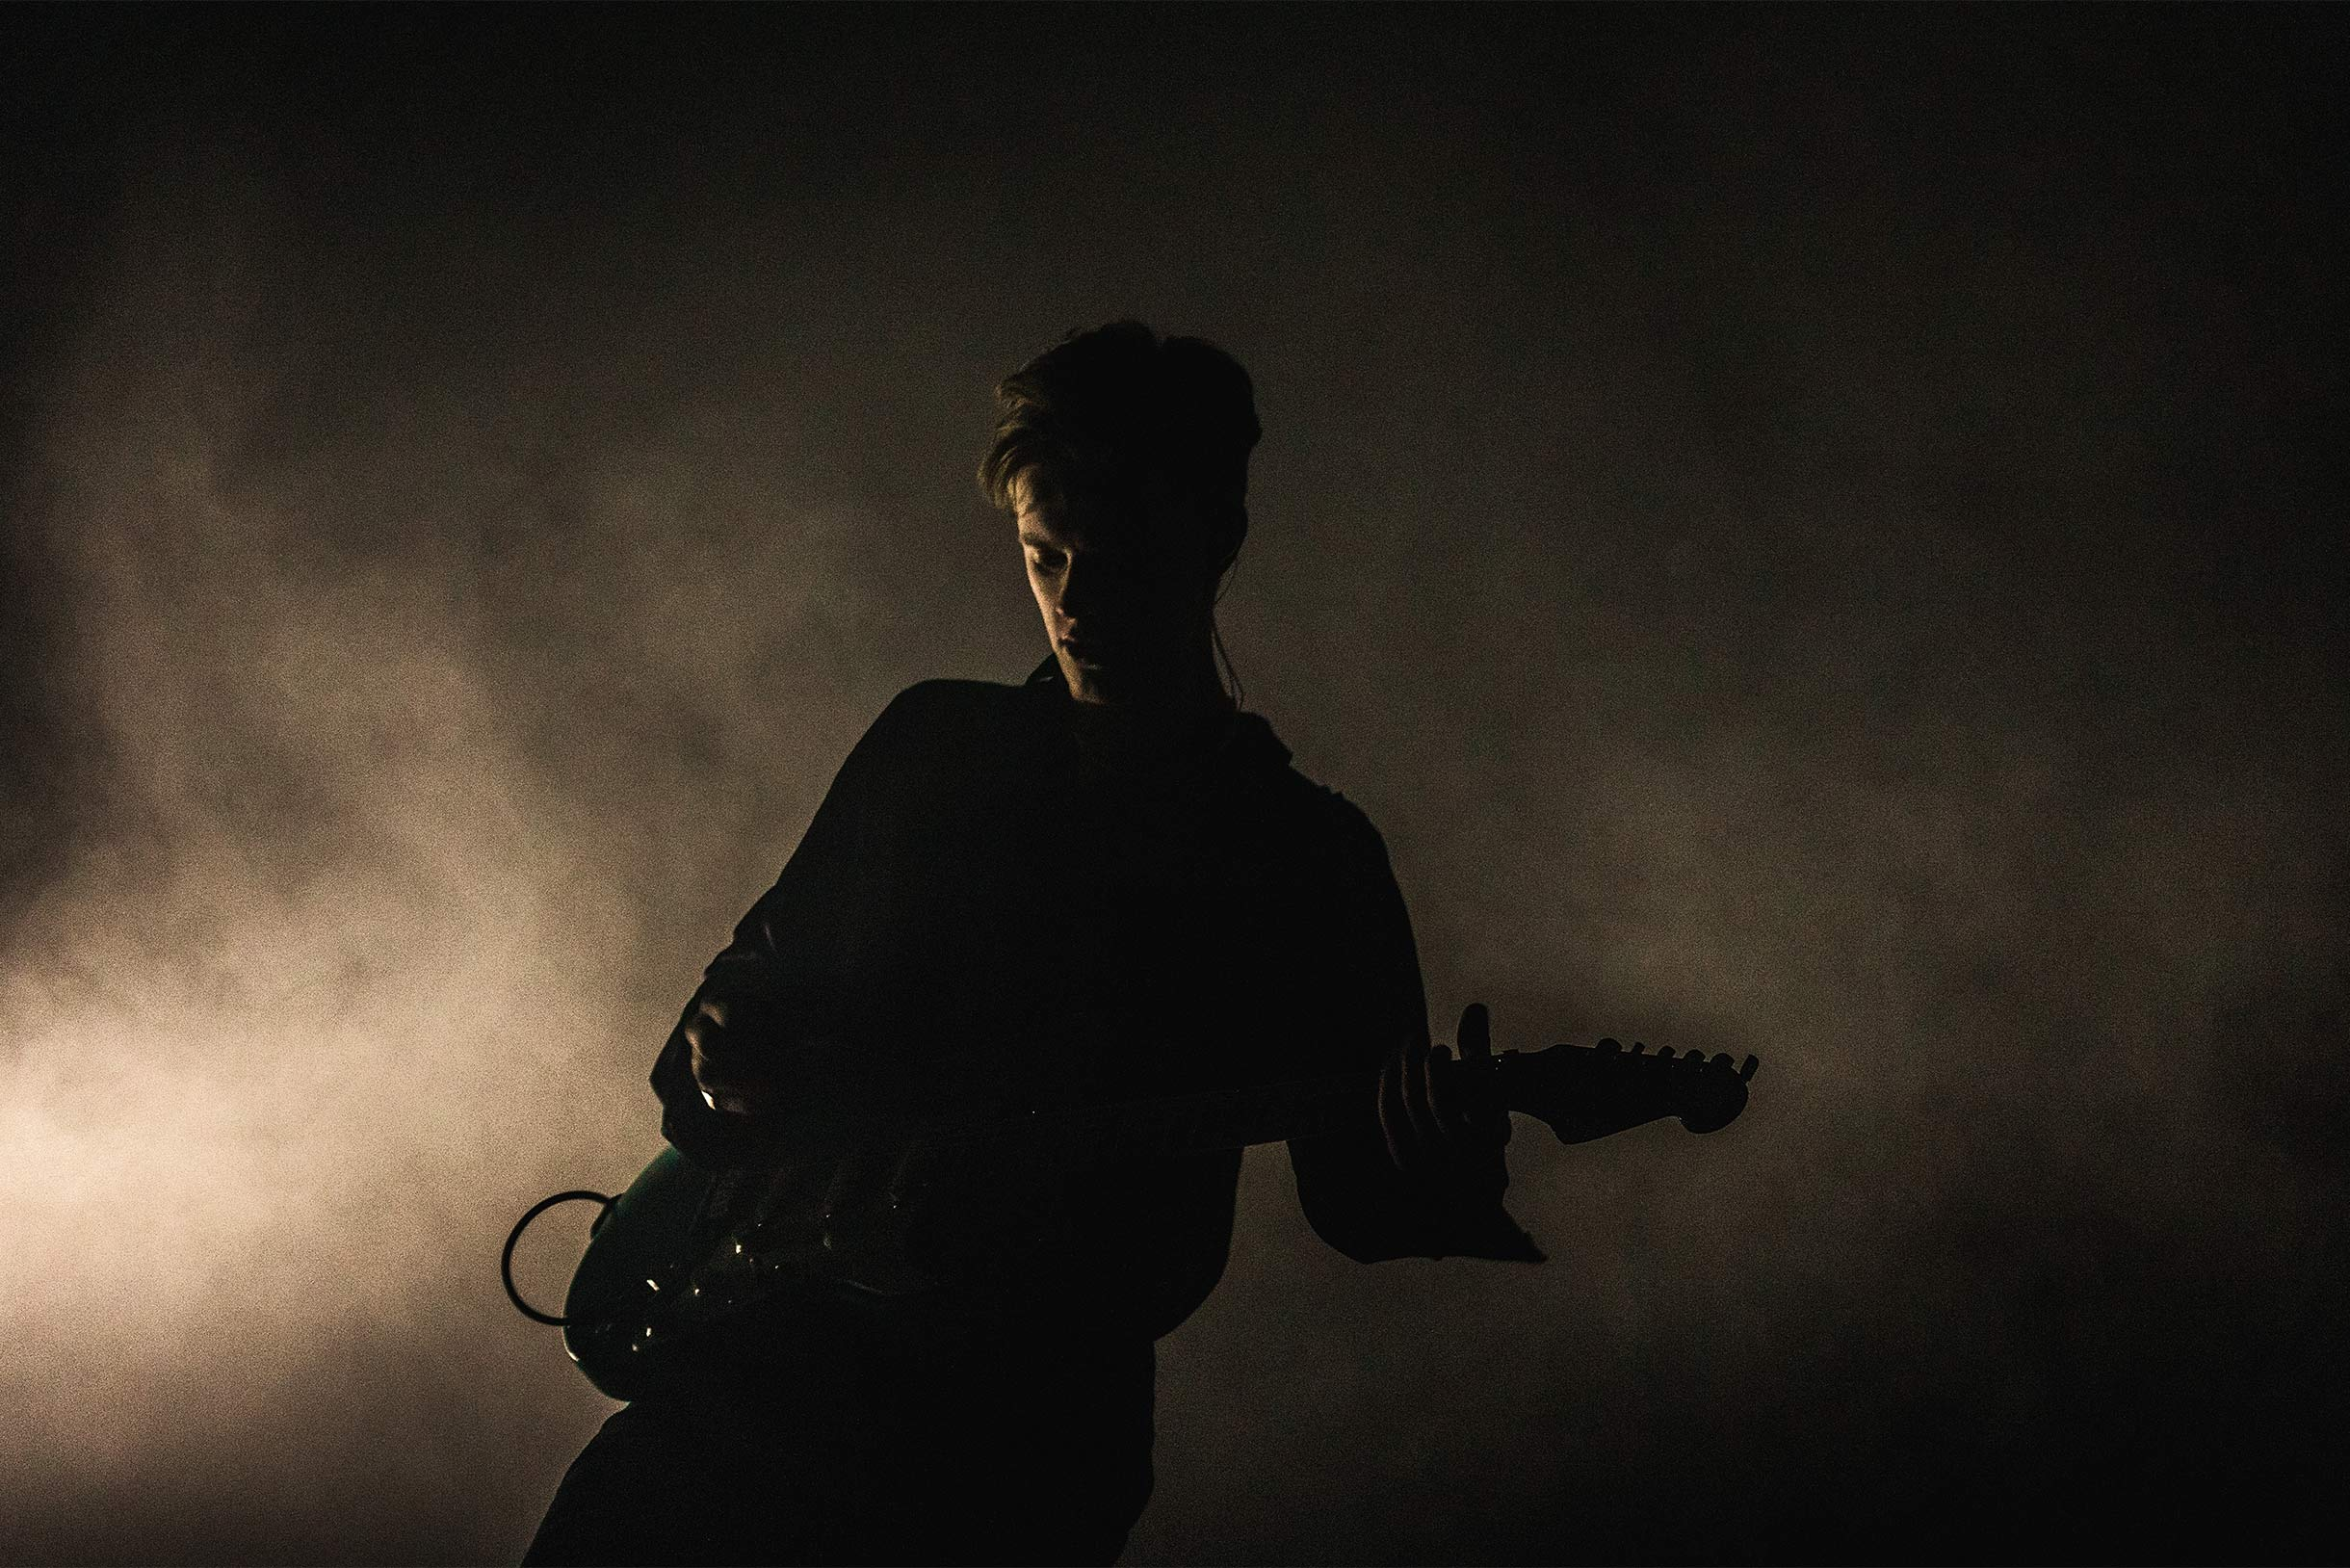 pale waves guitarist silhouette